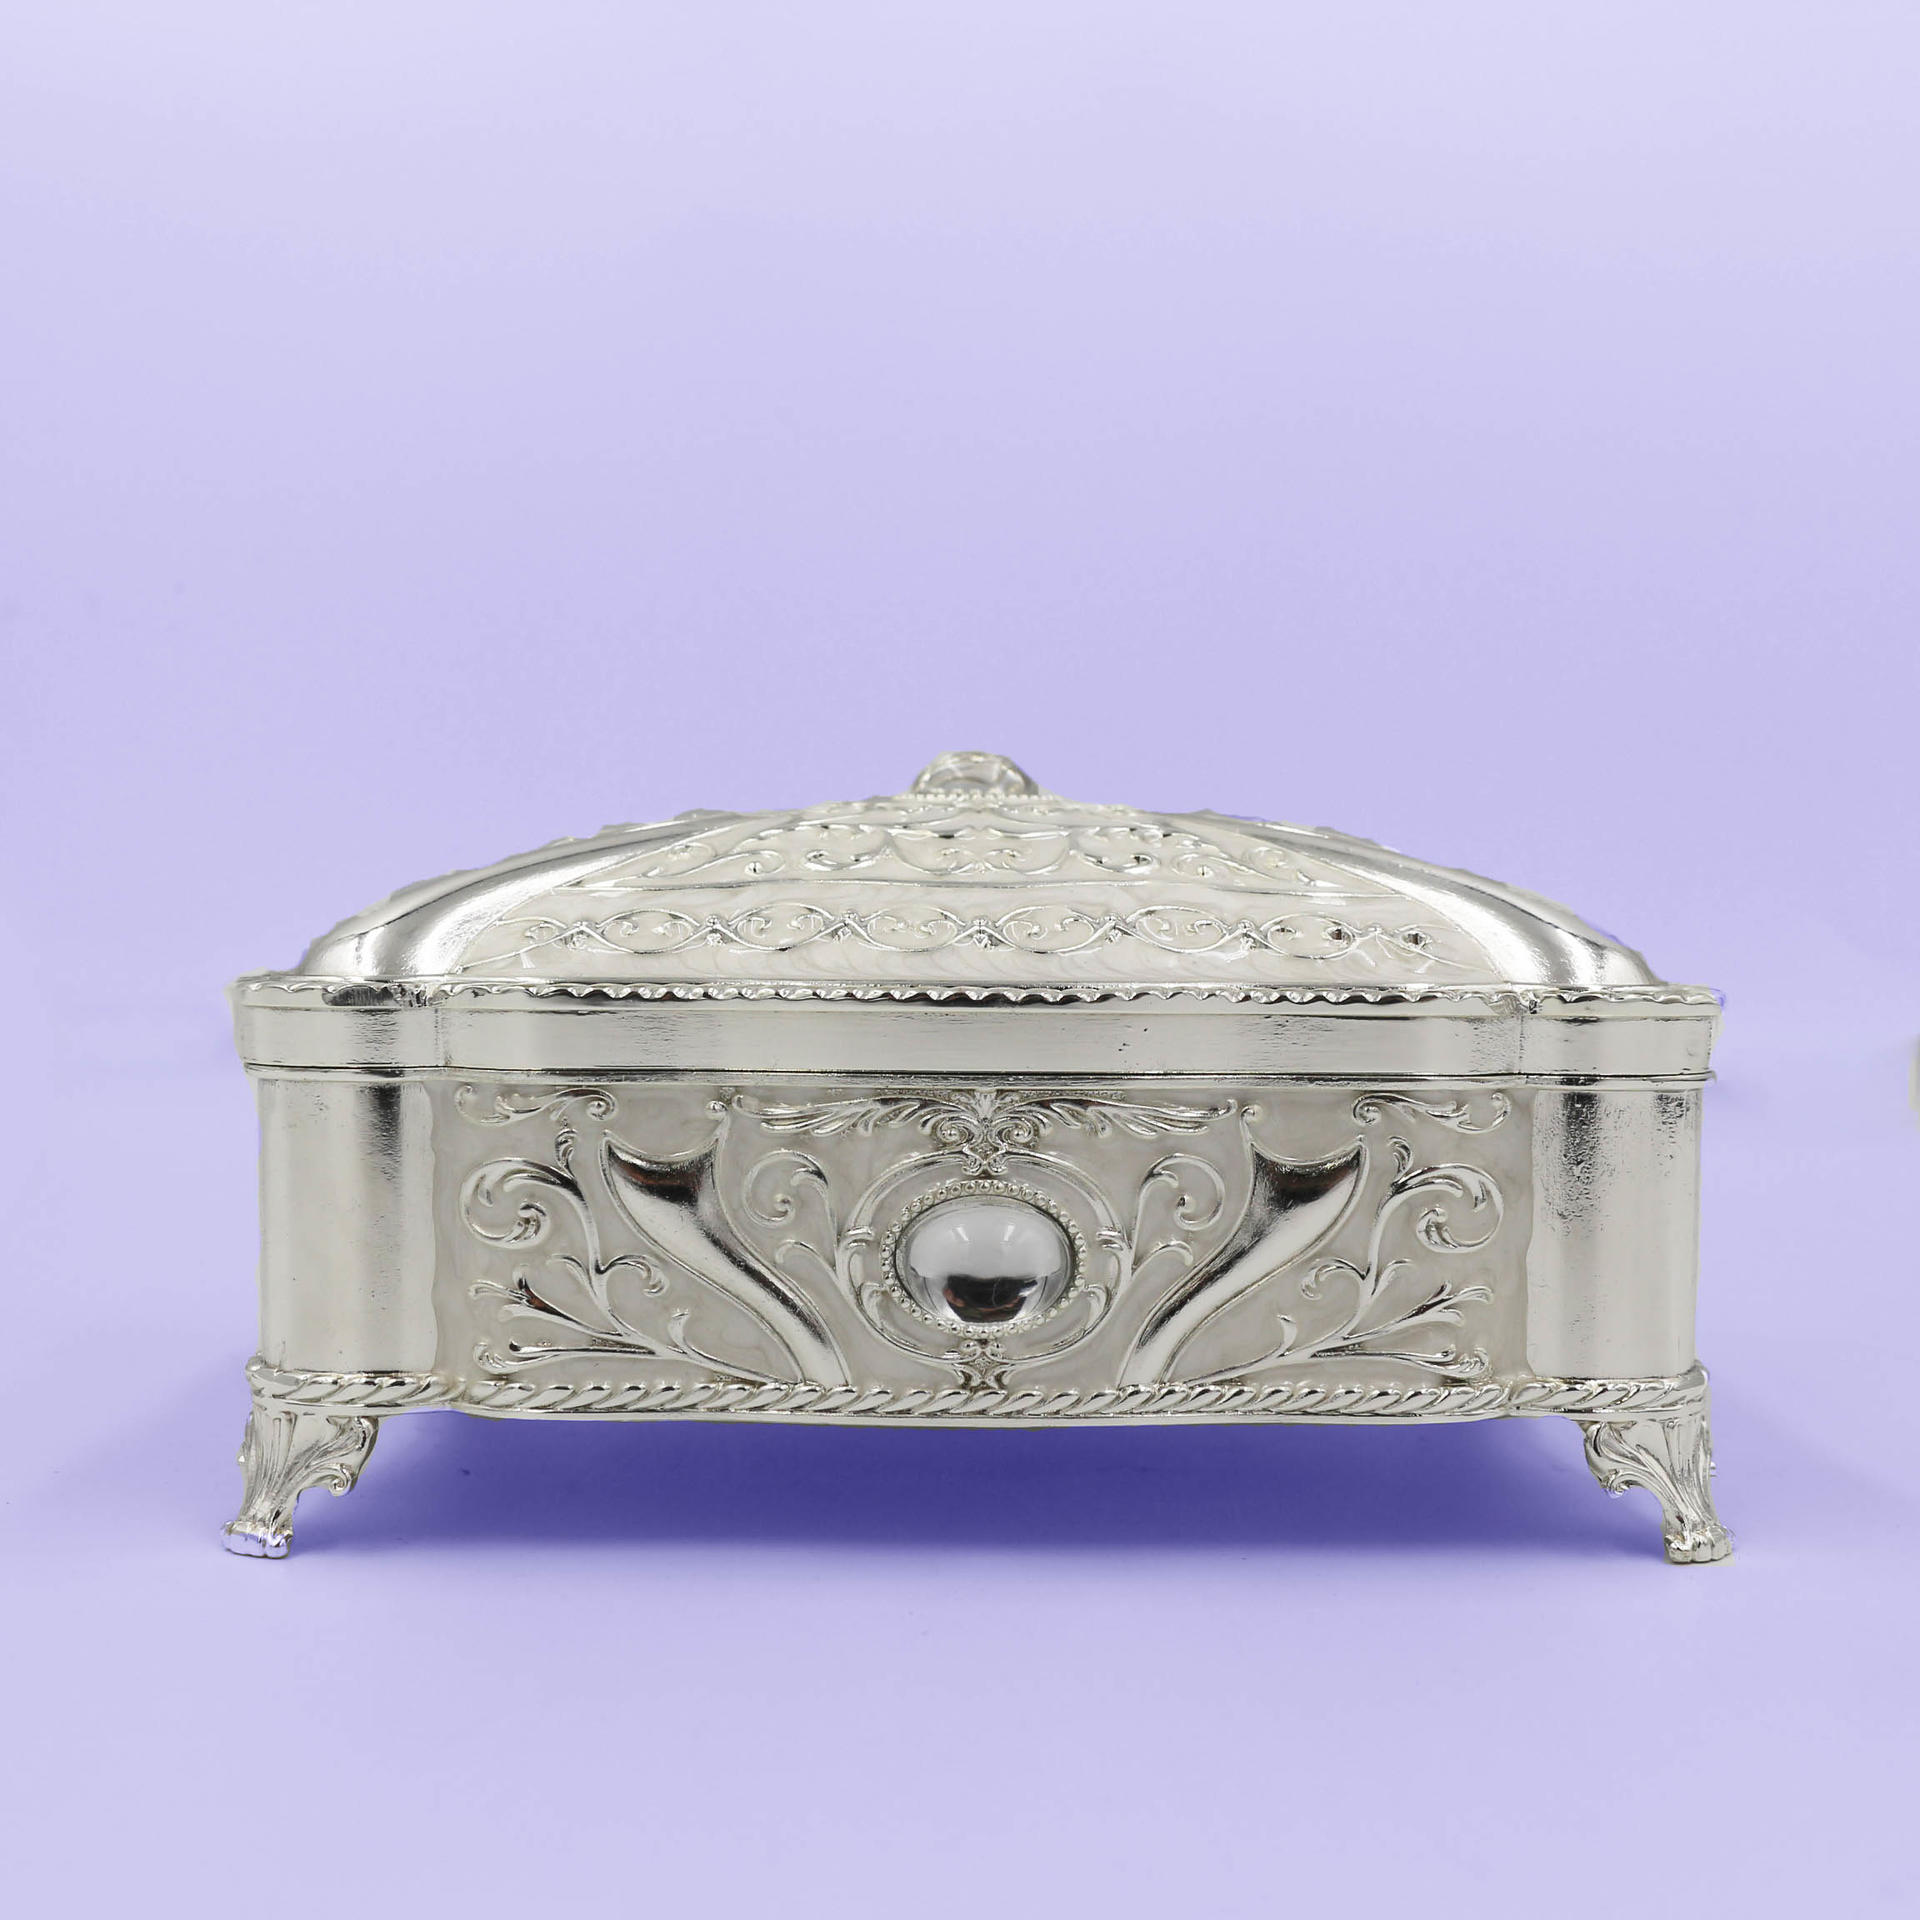 European creative retro jewelry storage box